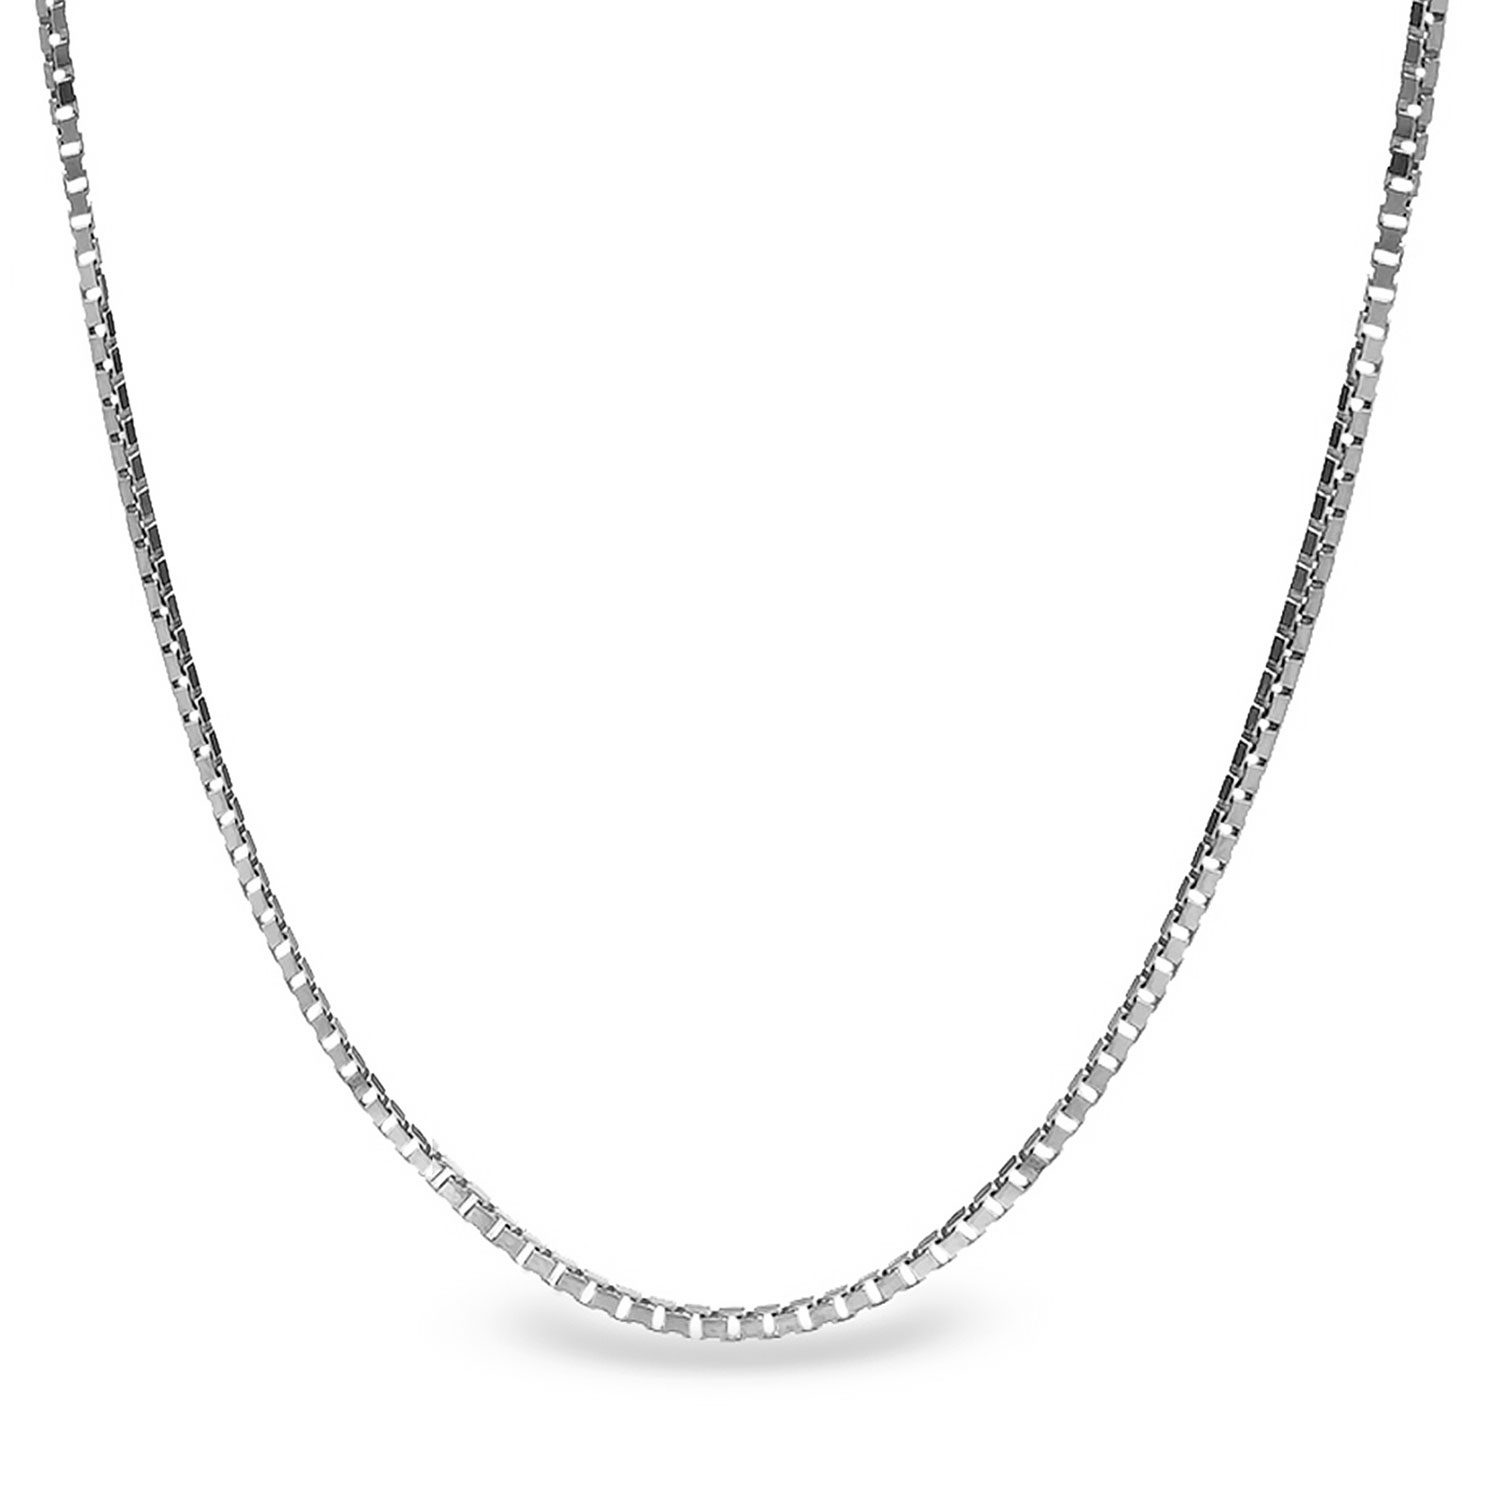 Box Chain Sterling Silver Necklace 24 In Silver